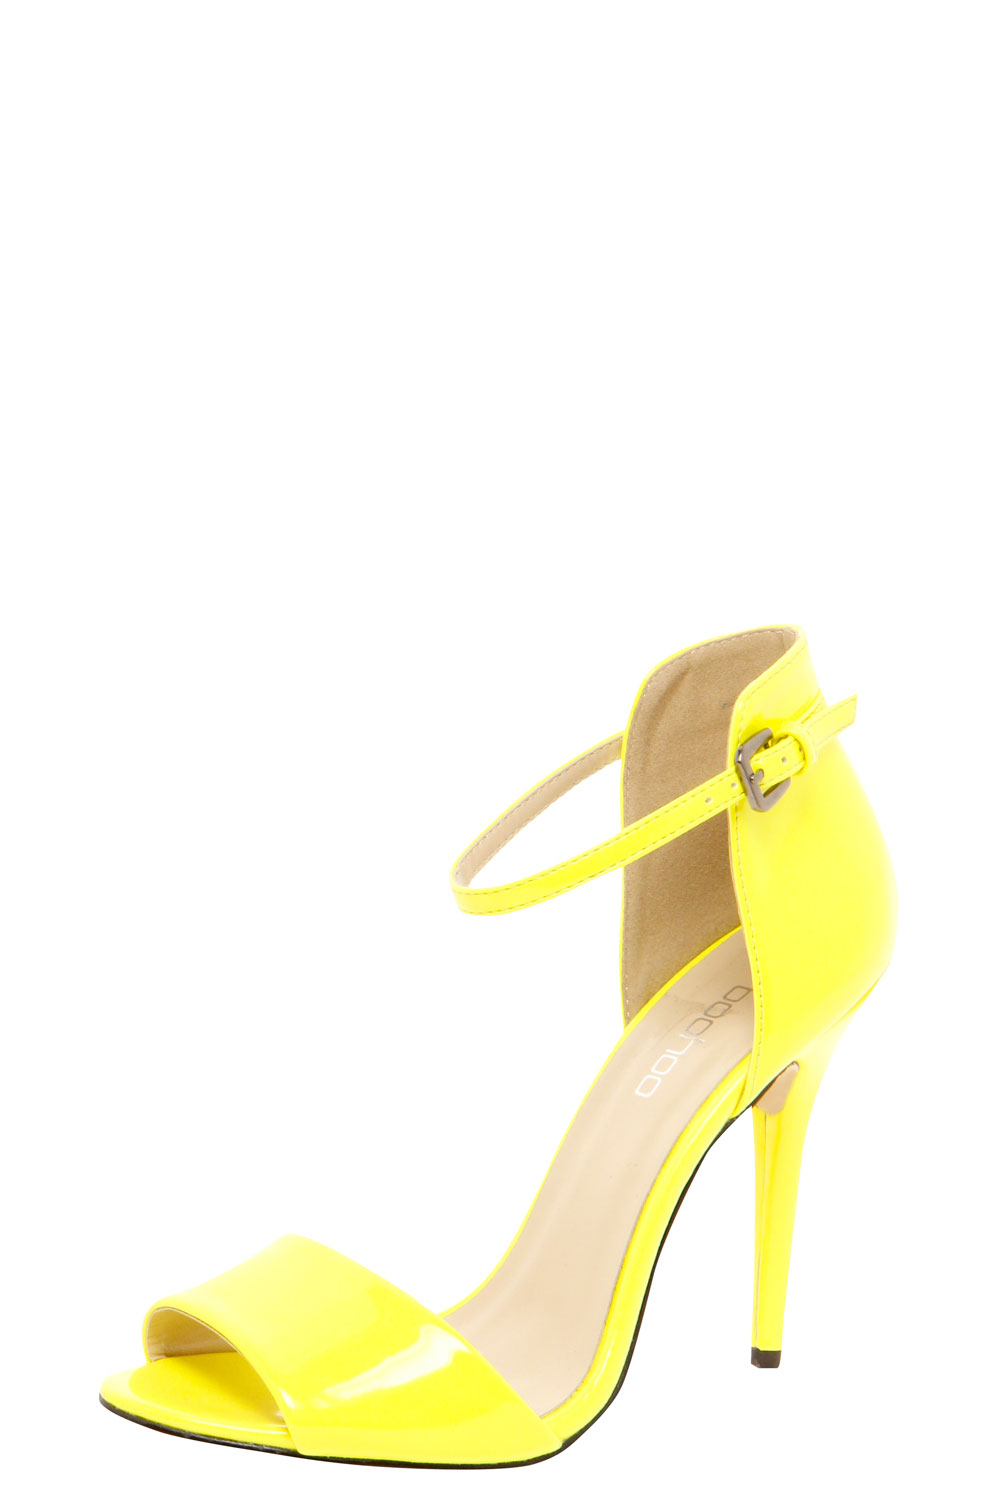 Boohoo-Scarlett-Yellow-Patent-Strappy-Heels-in-Yellow